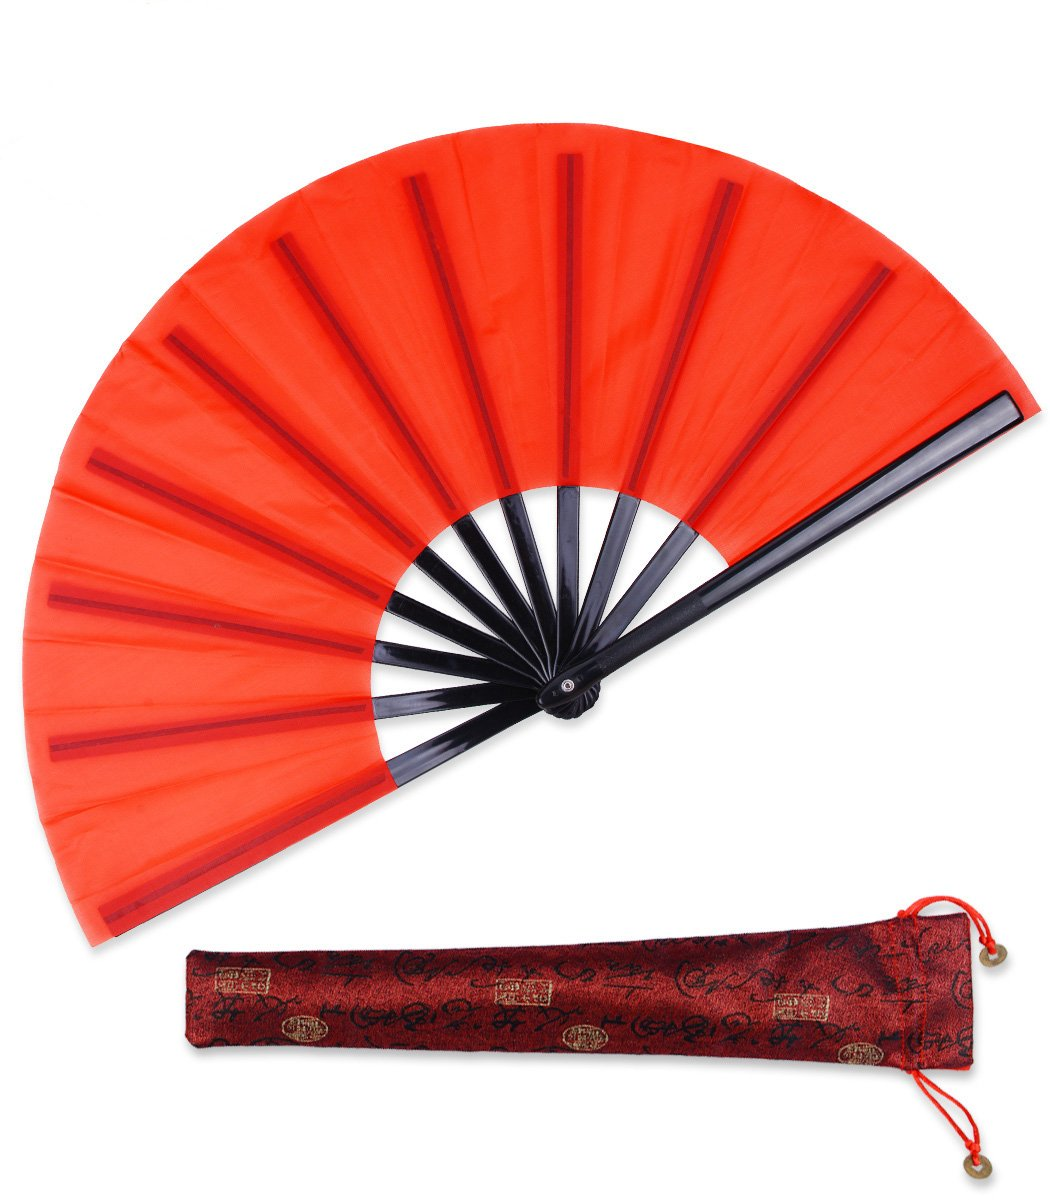 Large Chinese Hand Fan Kung Fu Tai Chi Plastic-Nylon Hand Held Dance Folding Fans for Men/Women With a Fabric Case for Protection 13inch (Folding Fan red)